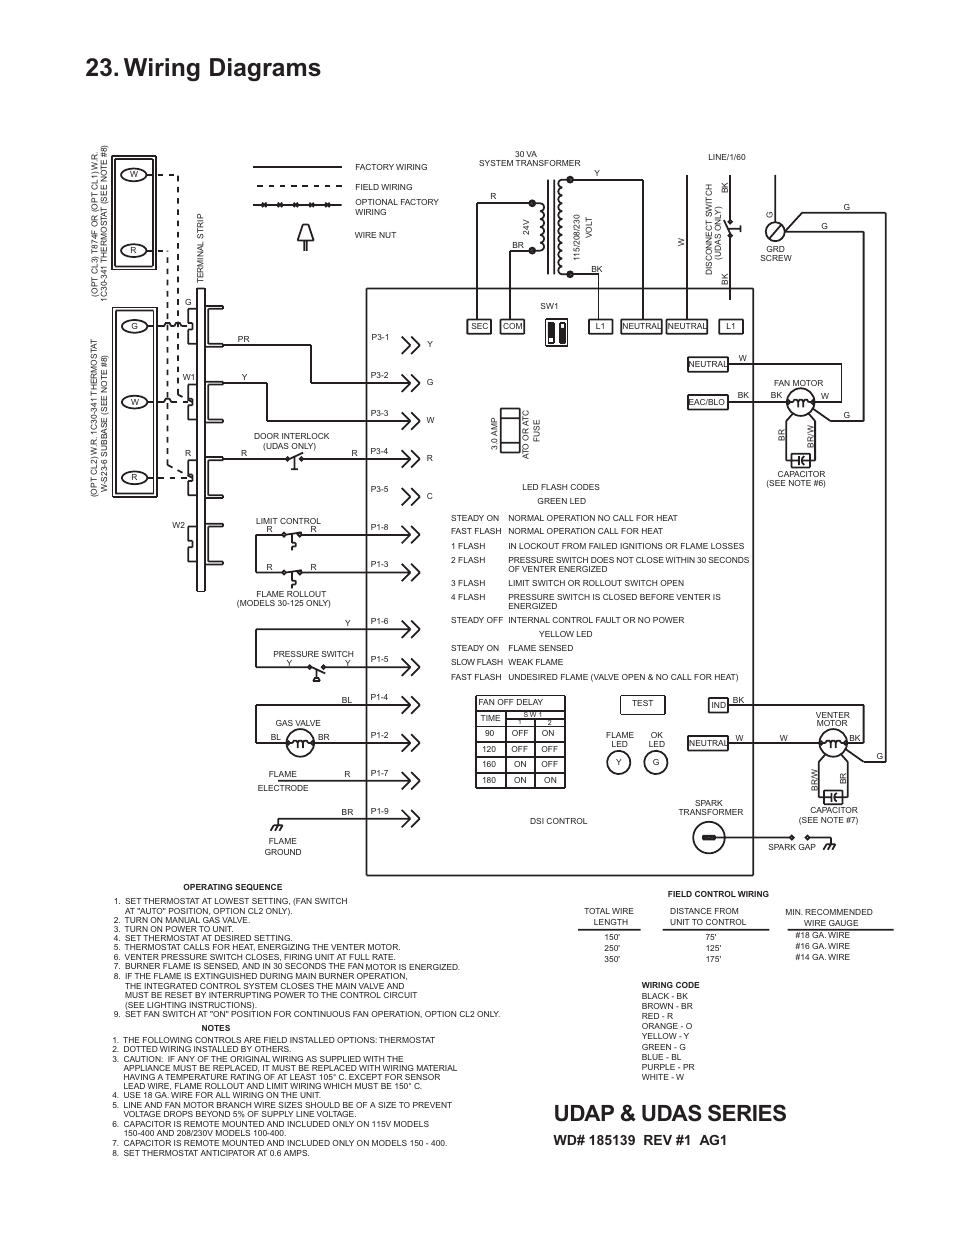 hight resolution of wiring diagrams udap udas series thomas betts udap user manual page 23 36